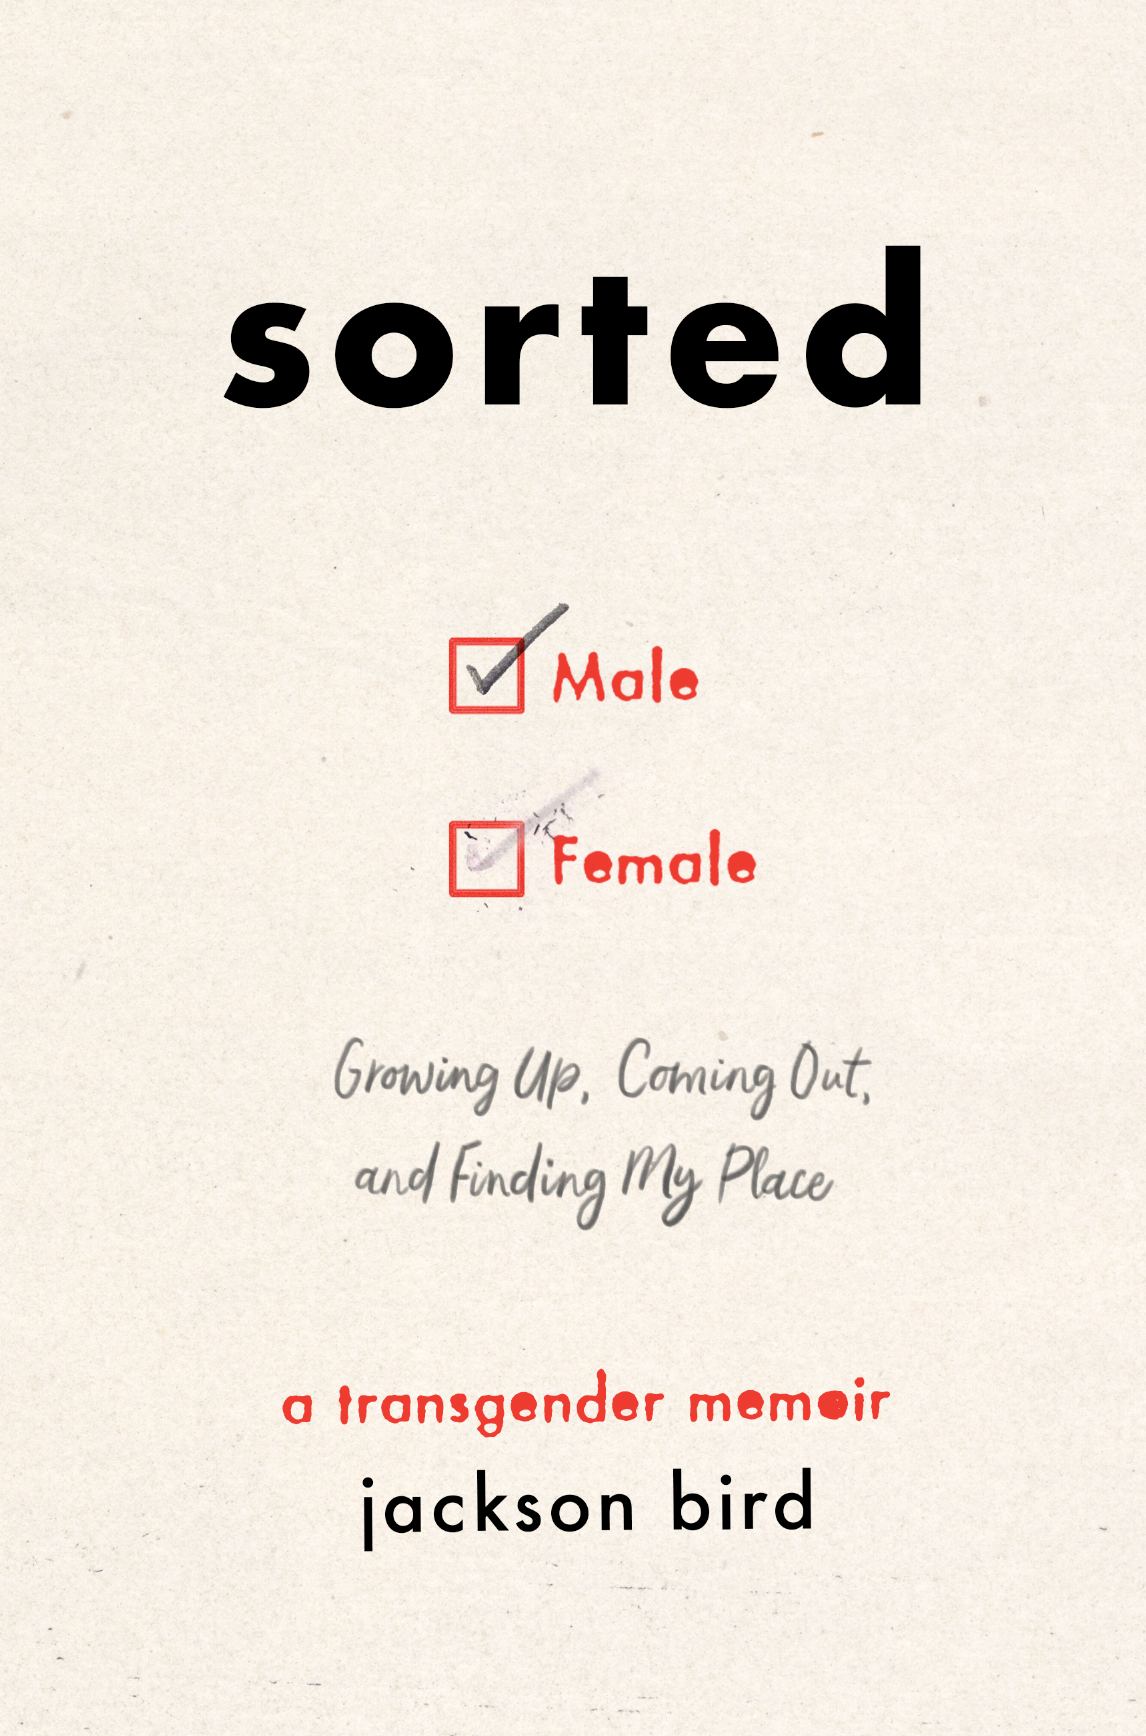 """The front cover of Jackson Bird's book Sorted. The cover is a pale gray with the title Sorted in bold letters above. Below it is a check box for Male and Female. The Male is ticked, with Female also ticked but the tick has been rubbed out. Below is the line """"Growing up, Coming out and Finding my Place"""" below that is the line """"A transgender memoir - Jackson Bird"""""""